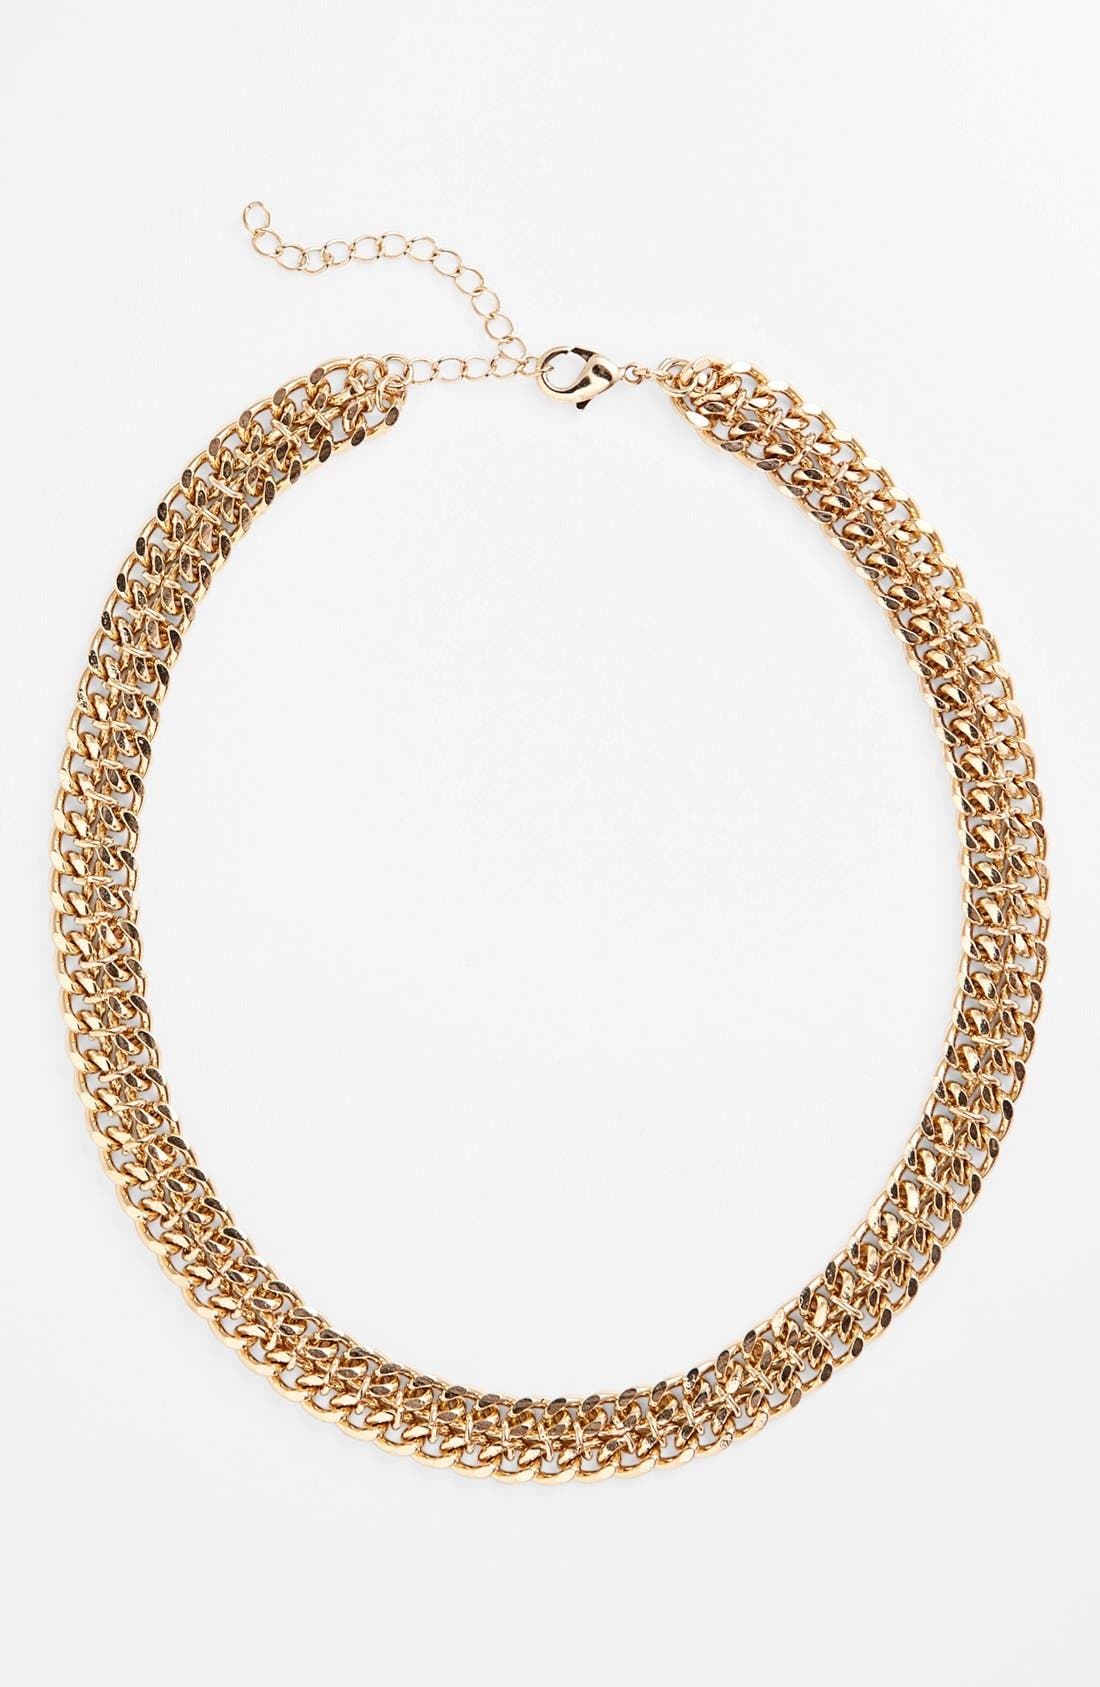 Alternate Image 1 Selected - Stephan & Co. Double Chain Link Necklace (Juniors) (Online Only)